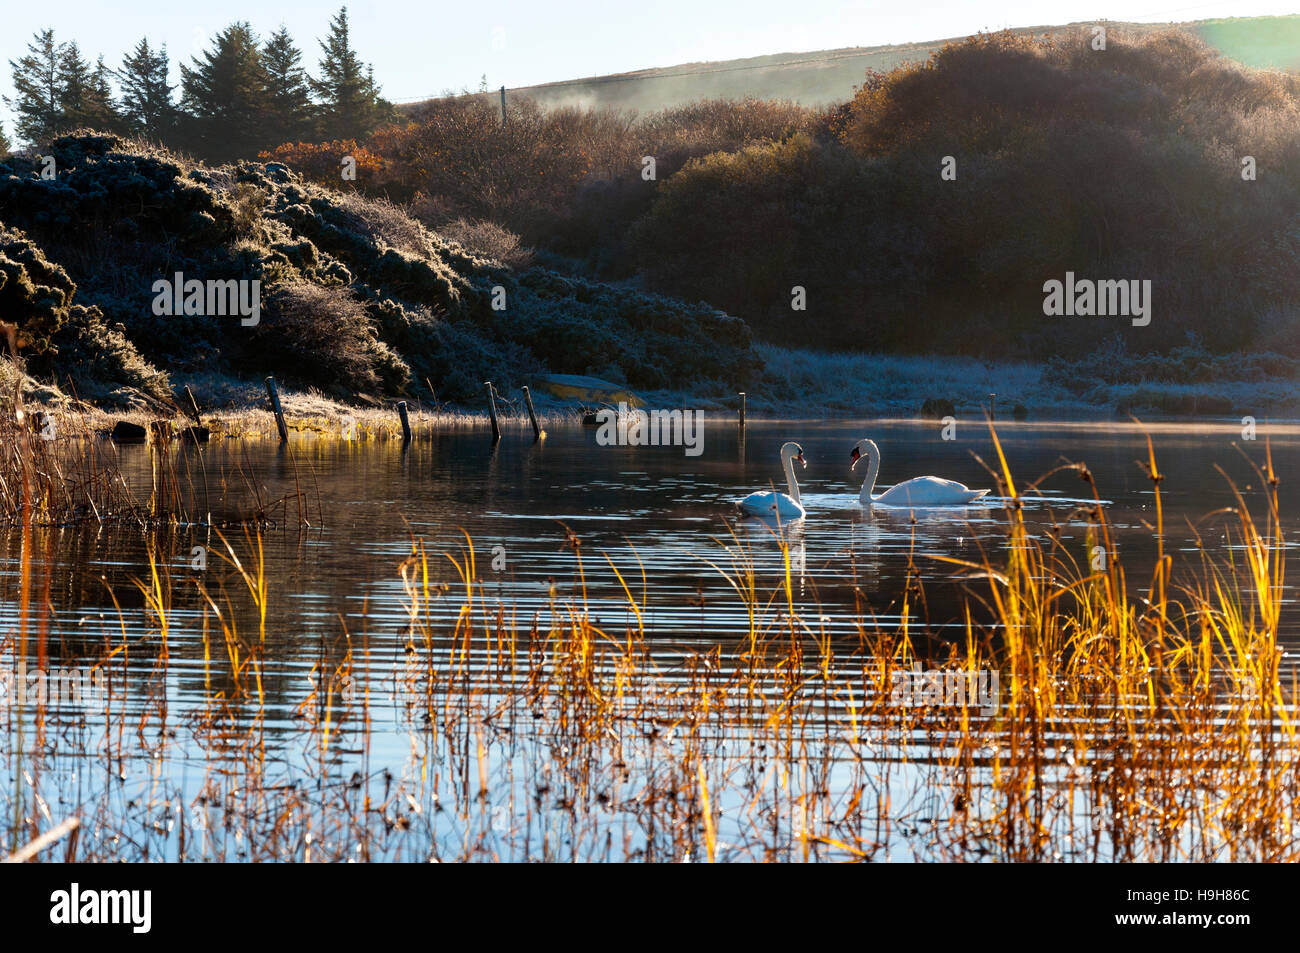 Ardara, County Donegal, Ireland weather. 24th November 2016. Swans glide on Lake Shanaghan on a calm, crisp, cold - Stock Image